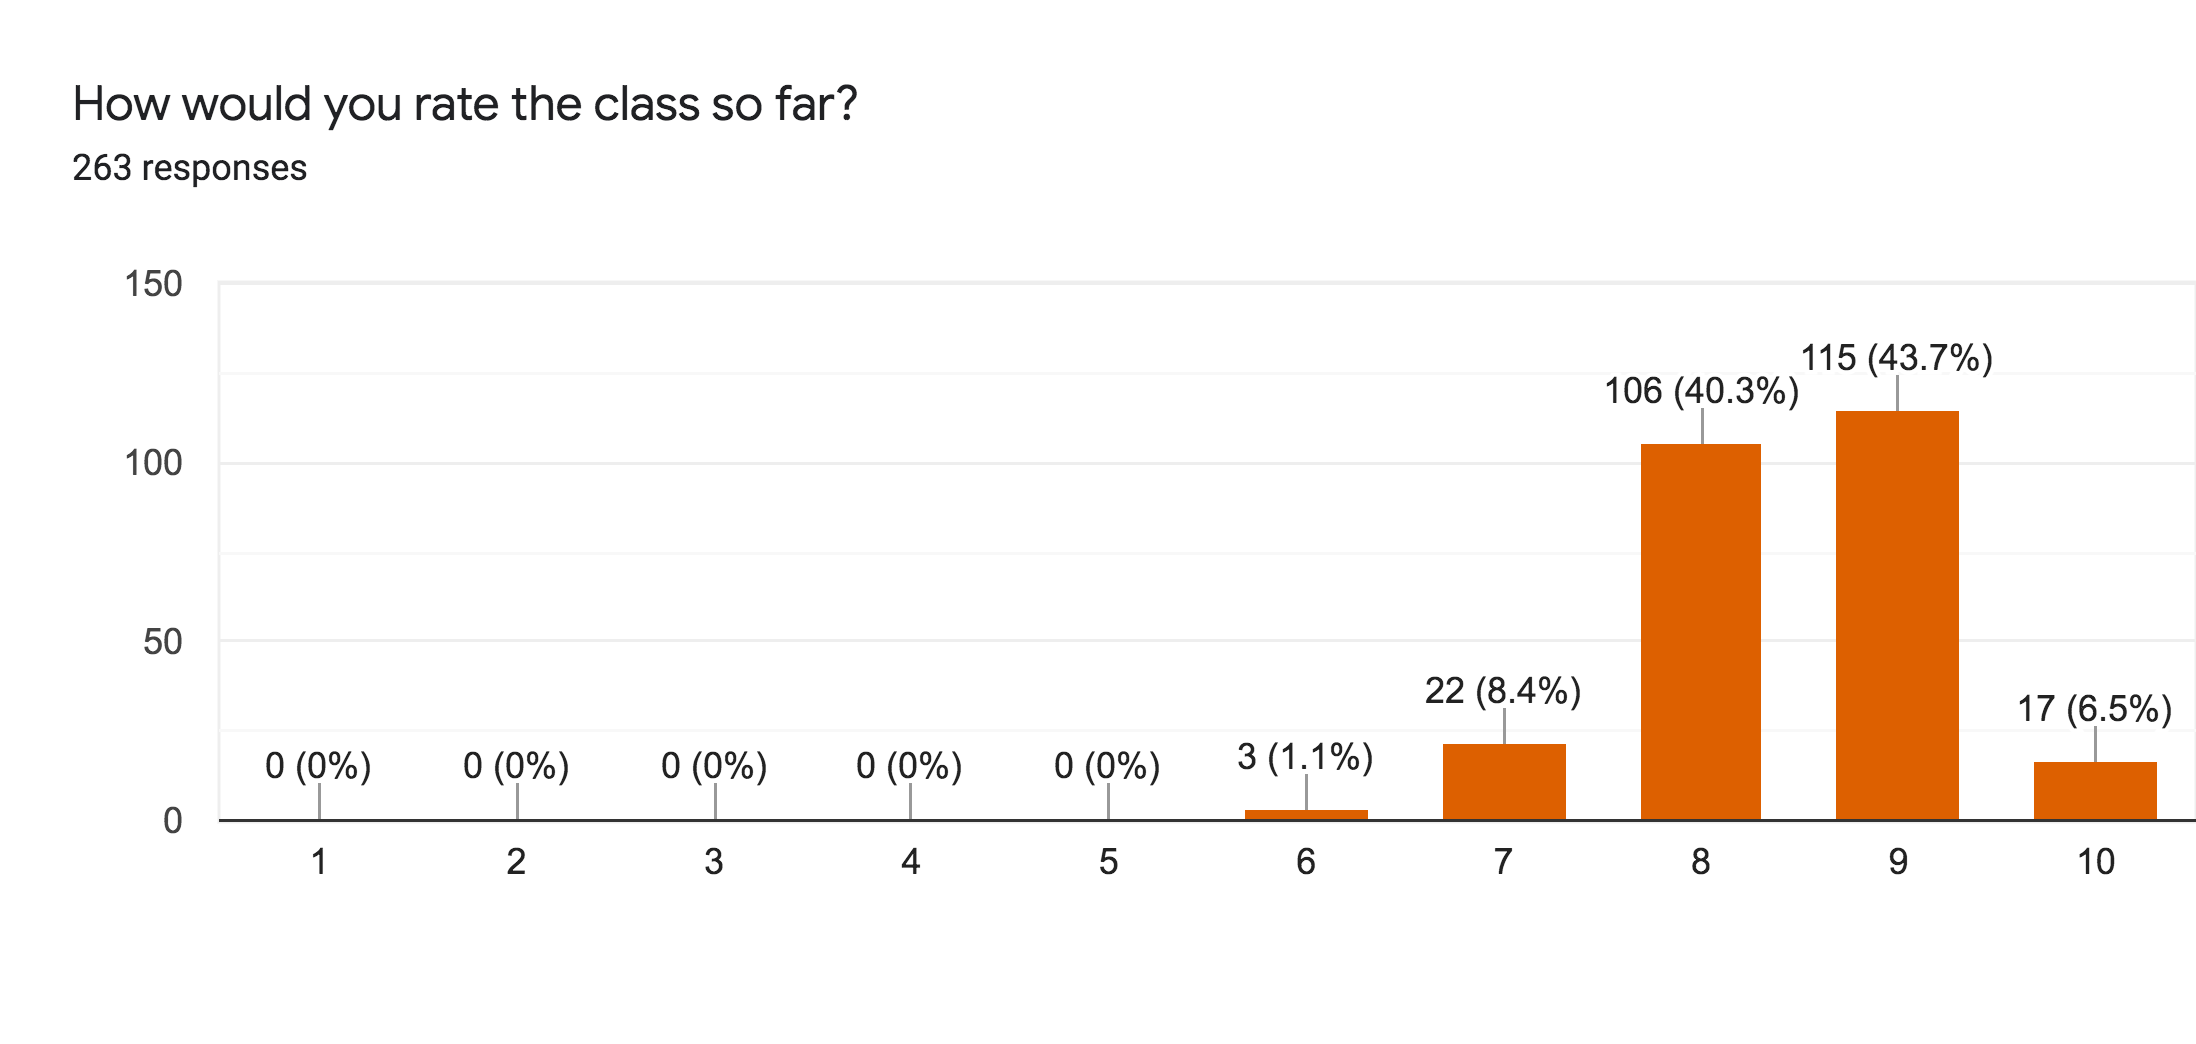 Forms response chart. Question title: How would you rate the class so far?. Number of responses: 263 responses.